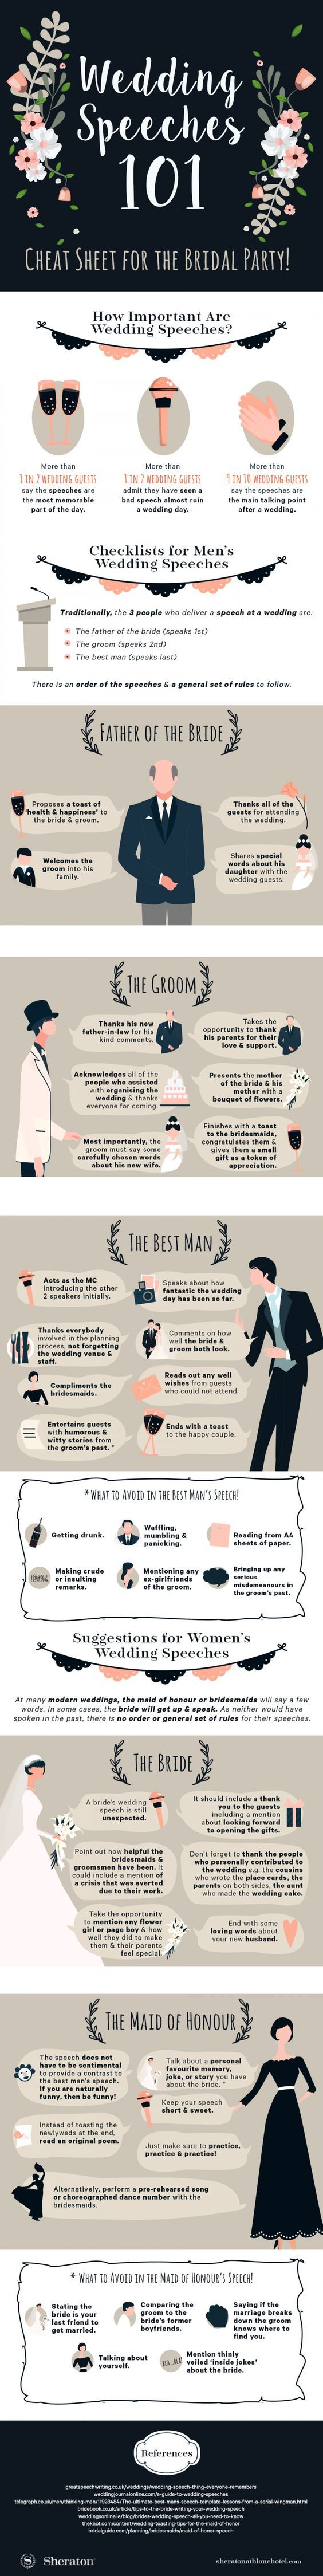 This Infographic By Sheraton Athlone Hotel Provide Tips On How To Write The Perfect Wedding Speech